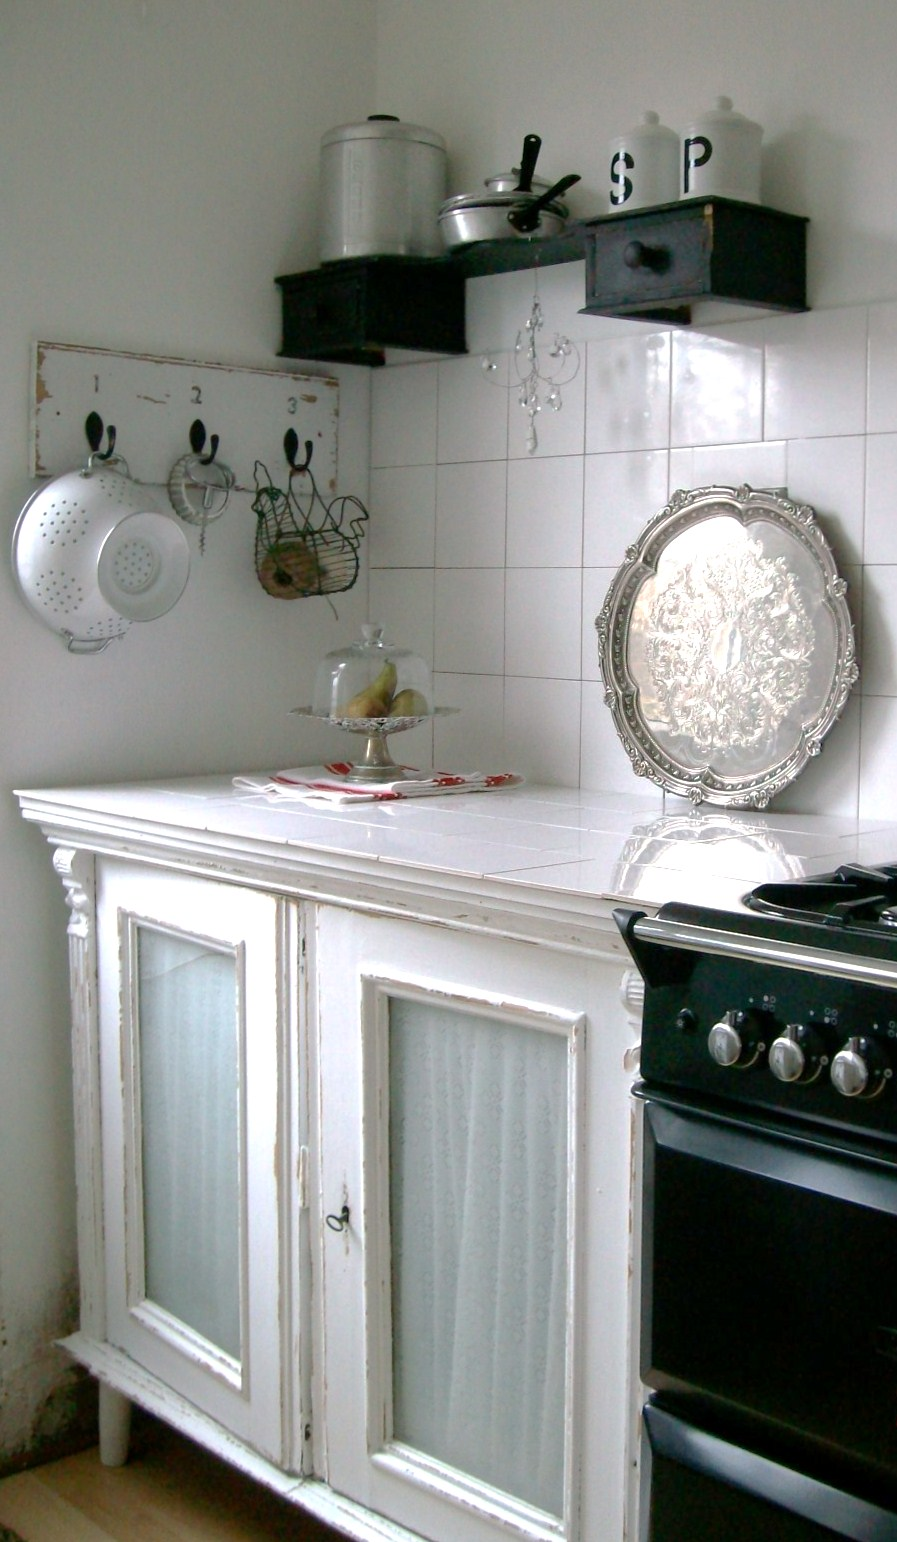 Room decorating before and after makeovers - Vintage kitchen ...